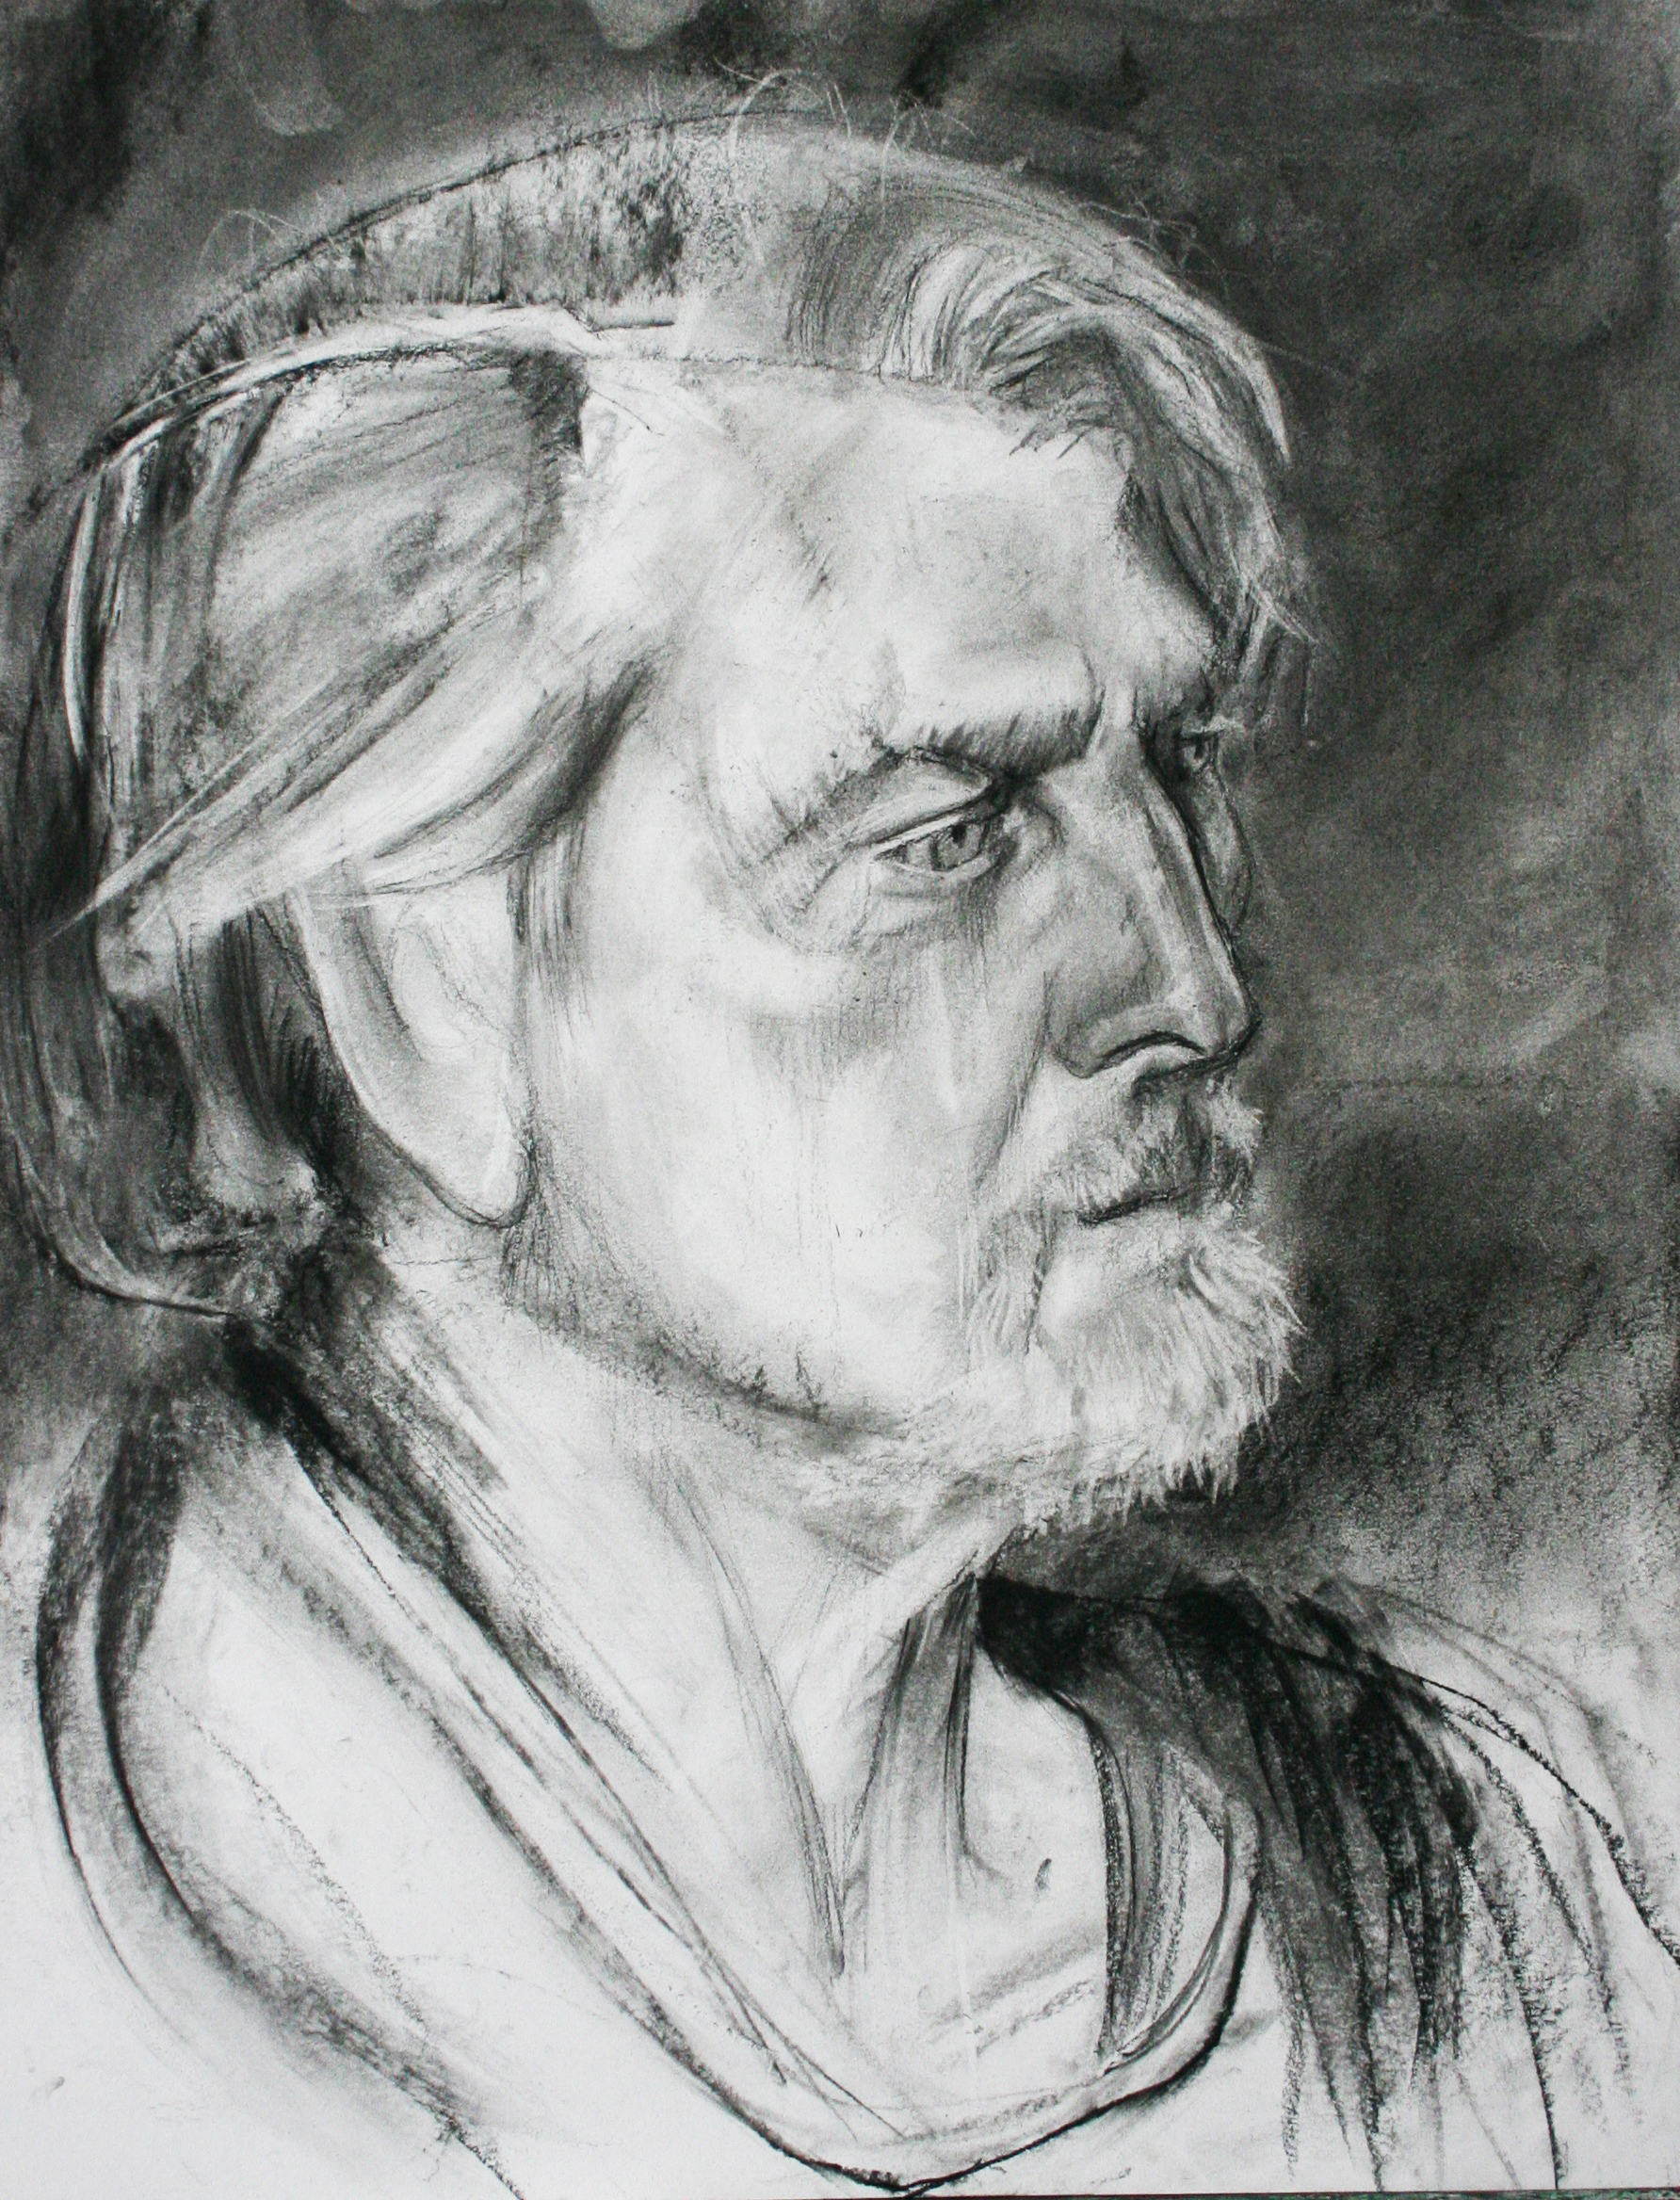 Ed Pepera did this 3-hour drawing.